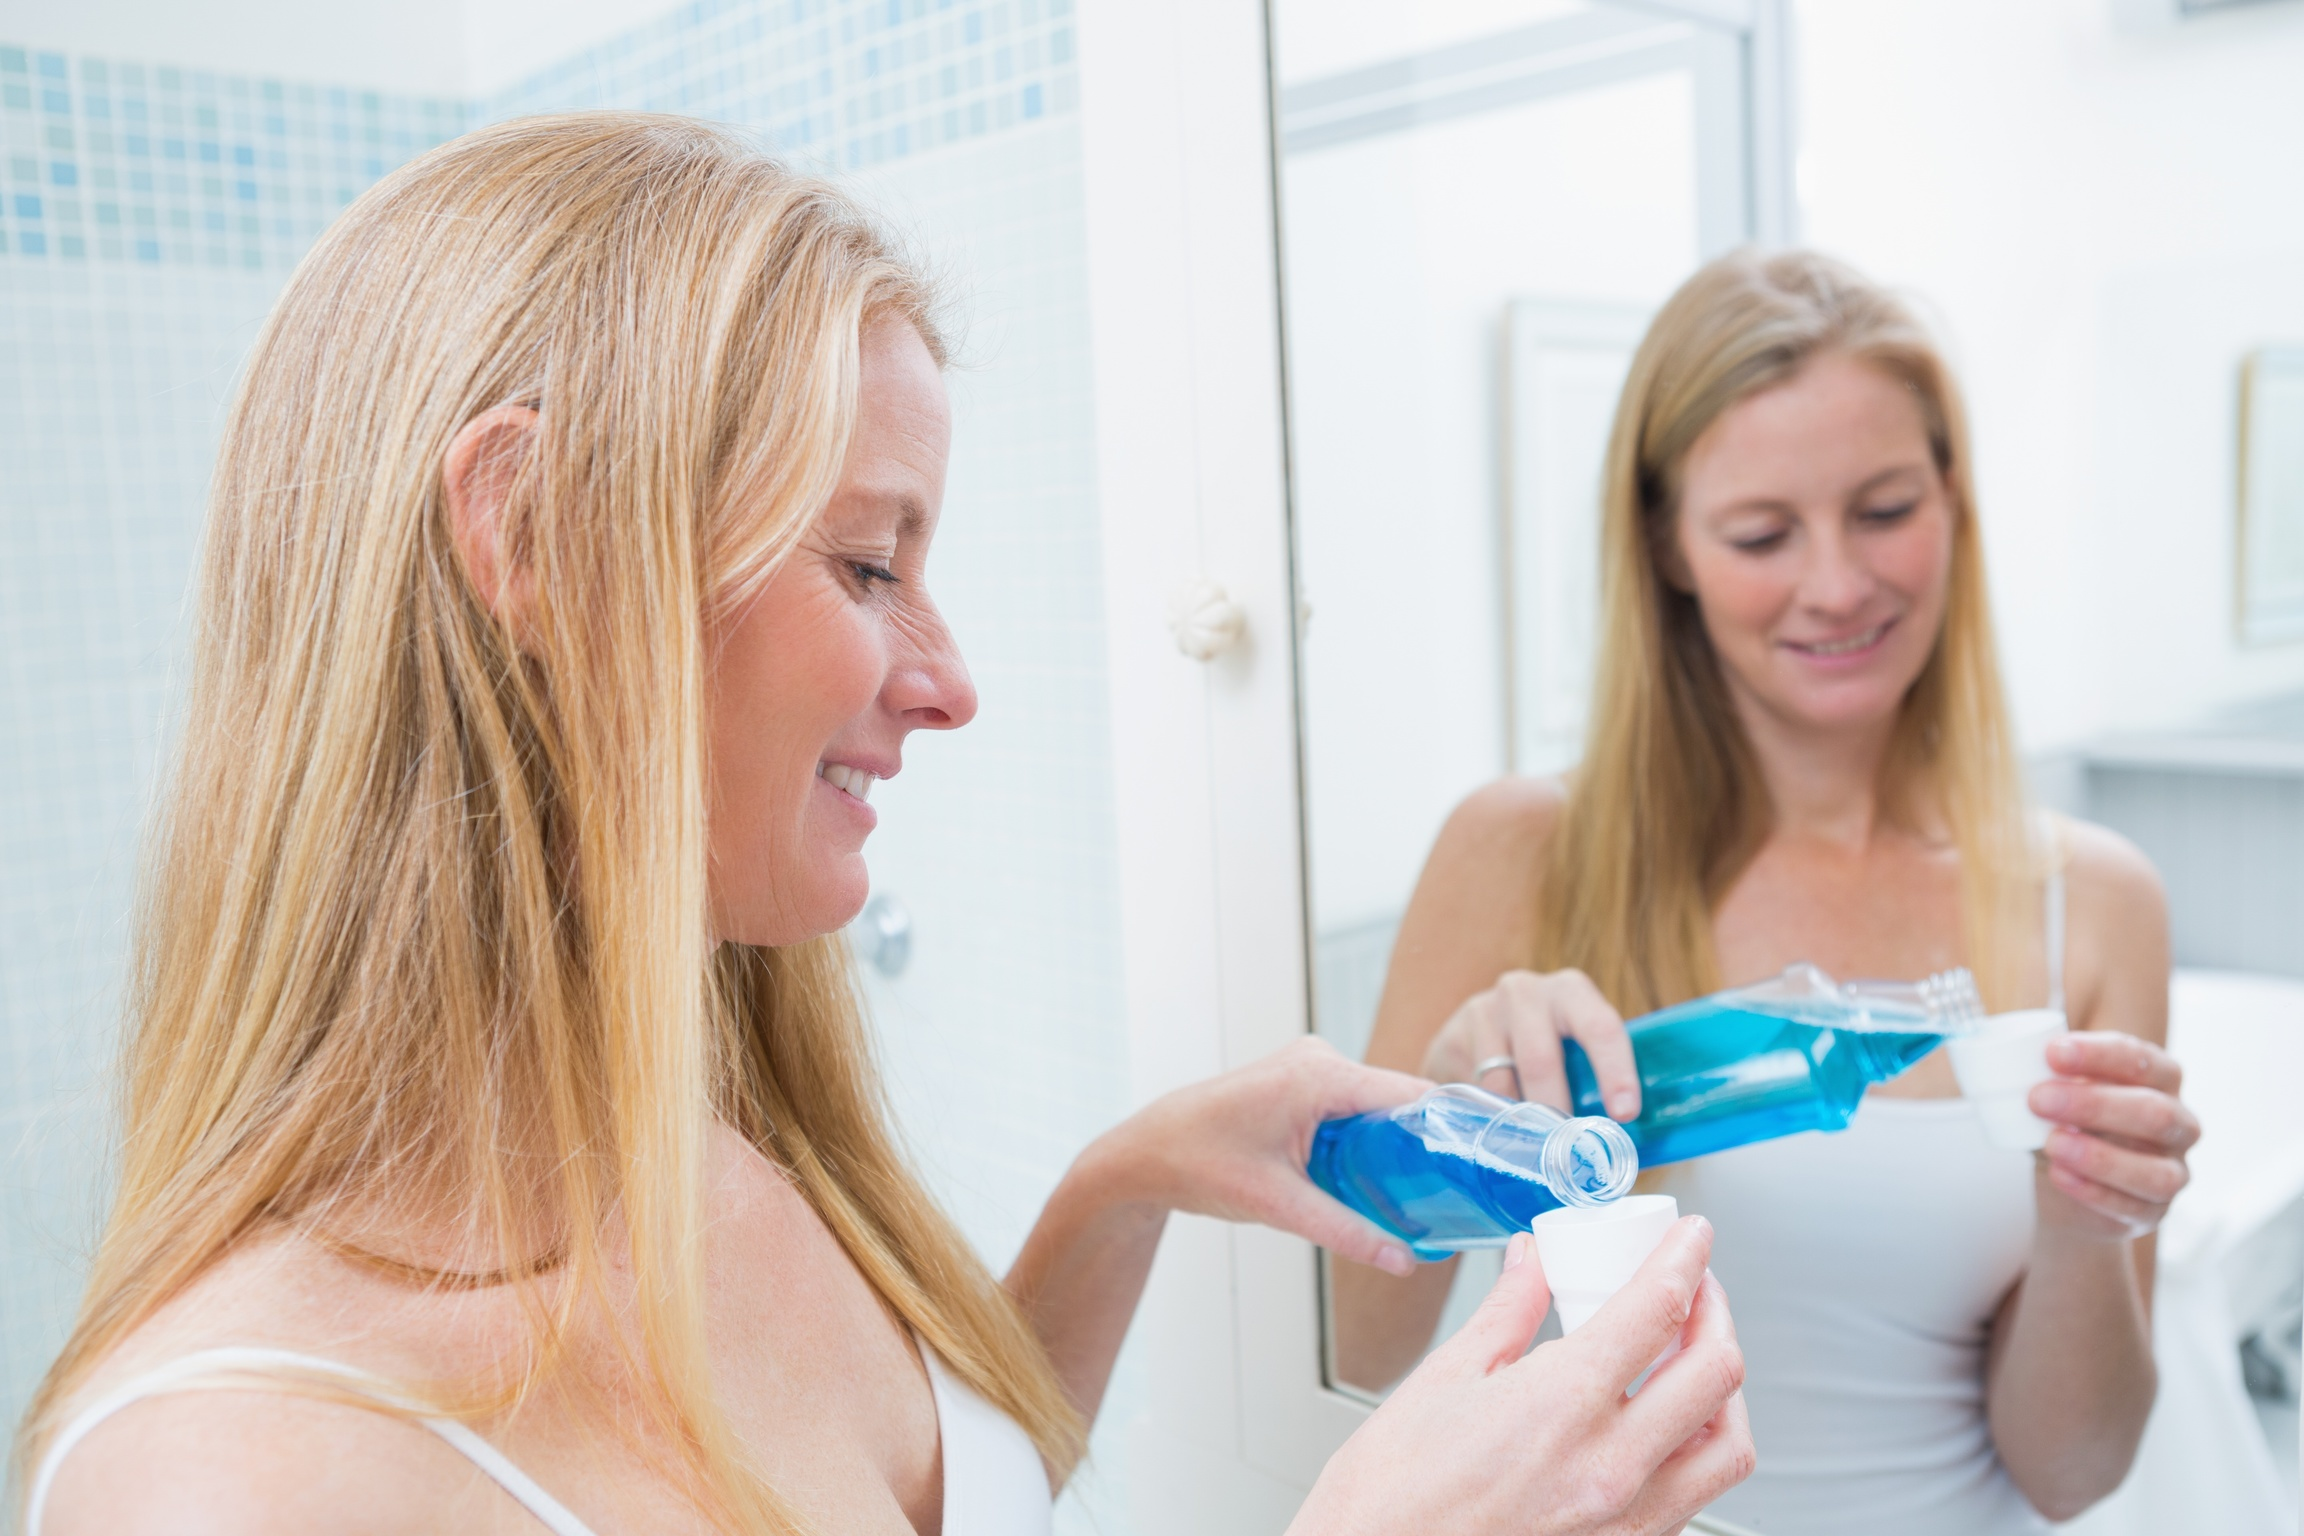 Woman practicing good oral hygiene by using mouthwash.